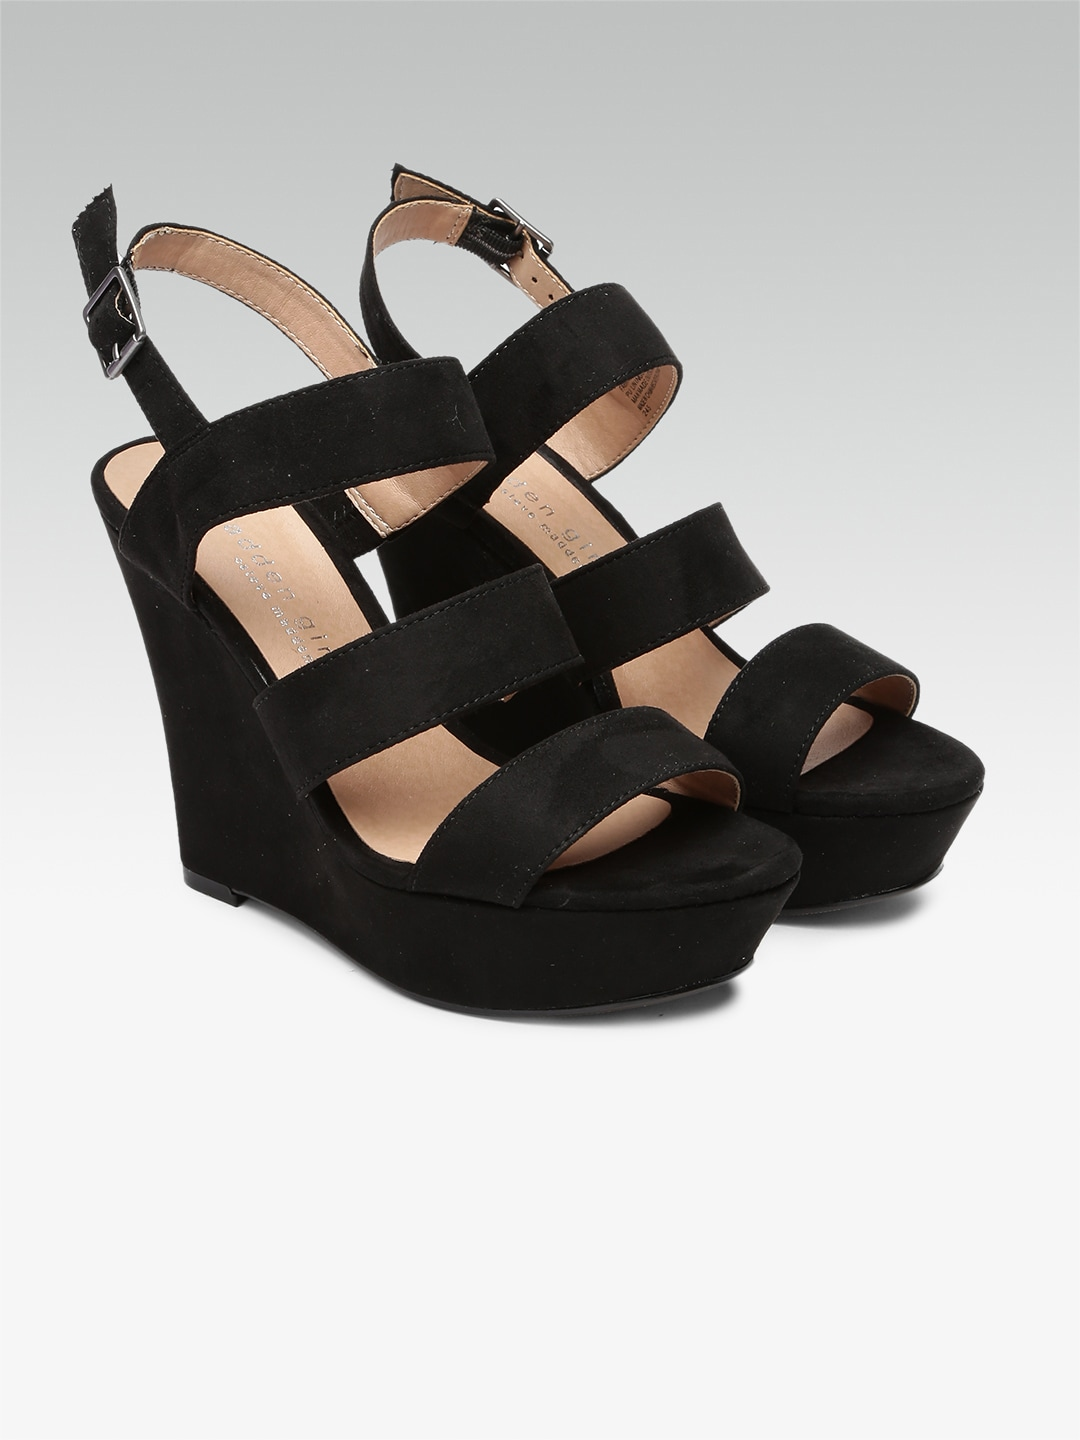 468b03b1d02 Steve Madden Wedge Shoes - Buy Steve Madden Wedge Shoes online in India